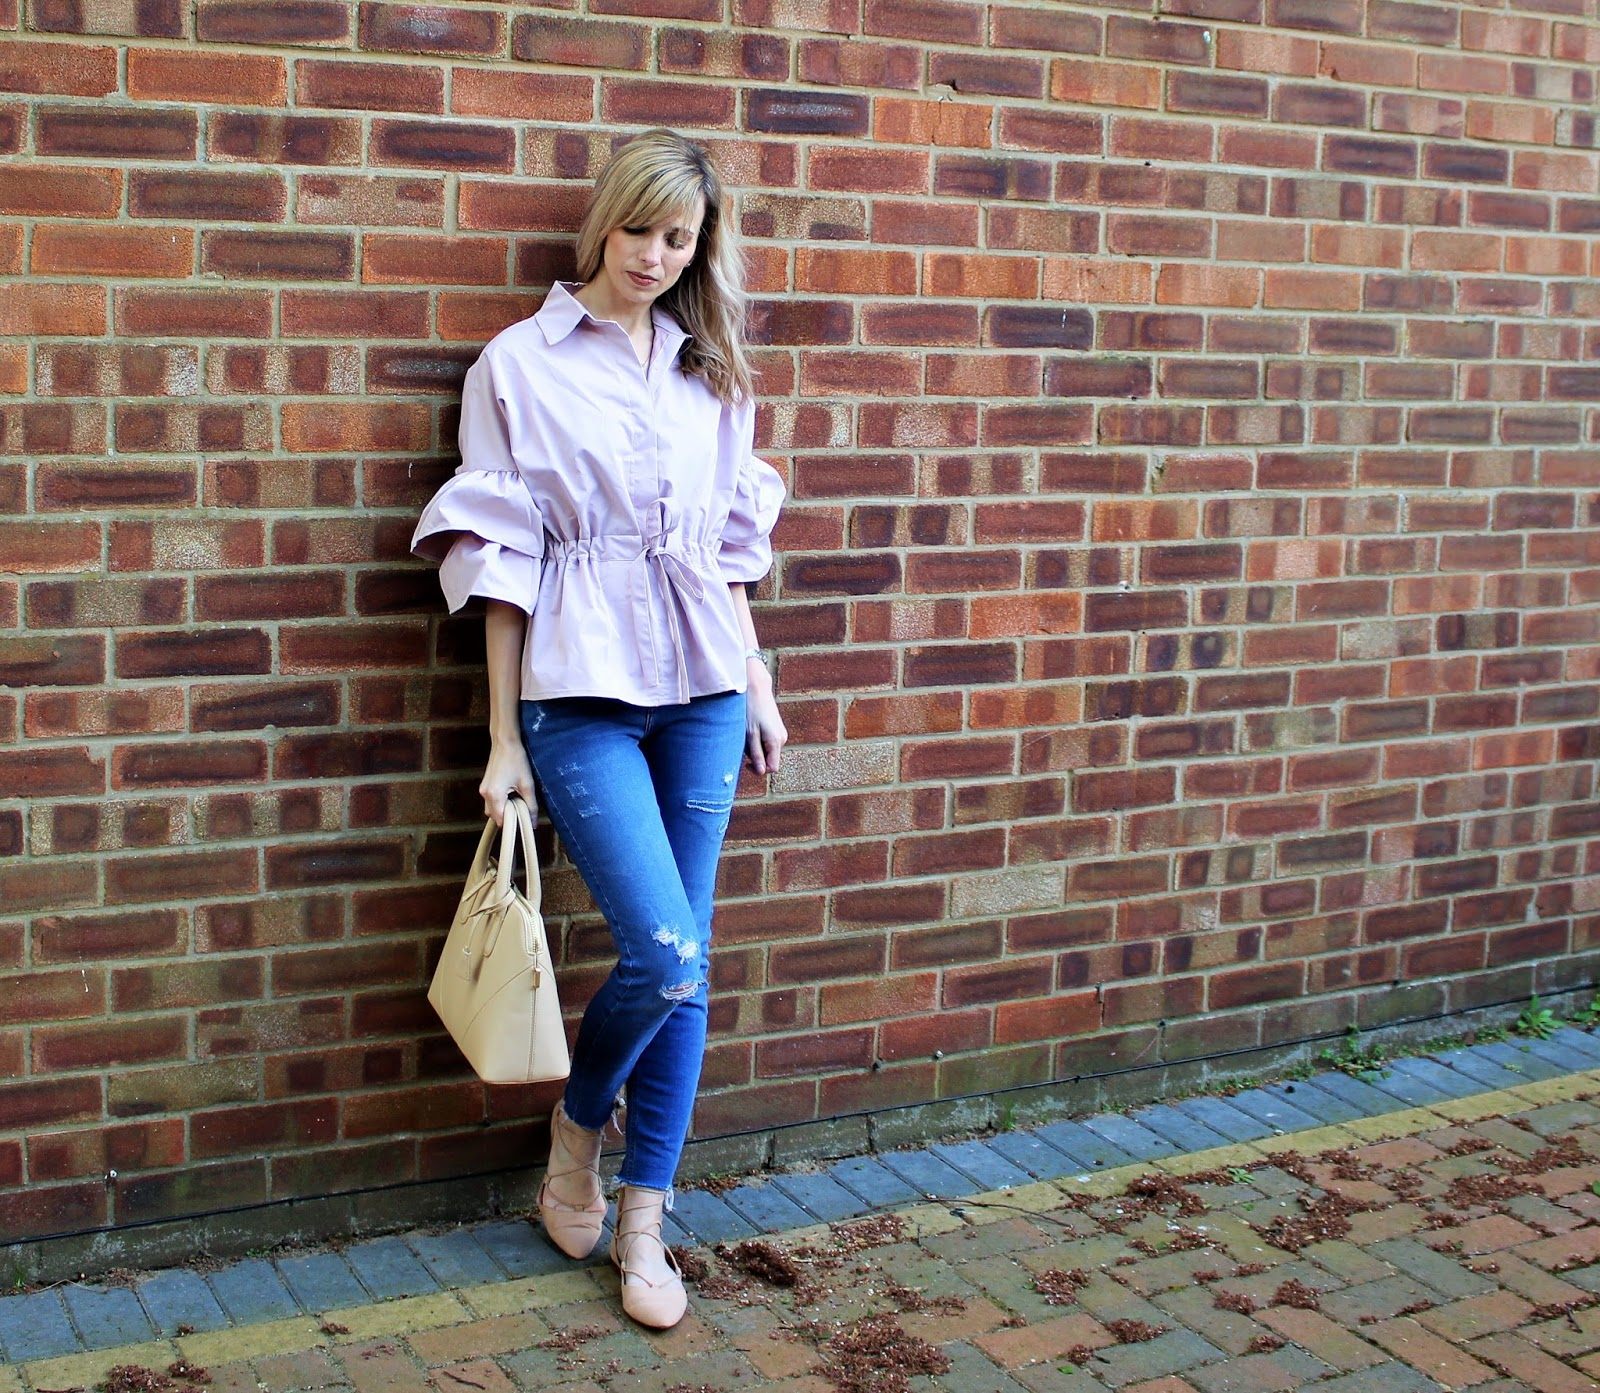 OOTD featuring a ruffled Shein blouse in blush pink - 2